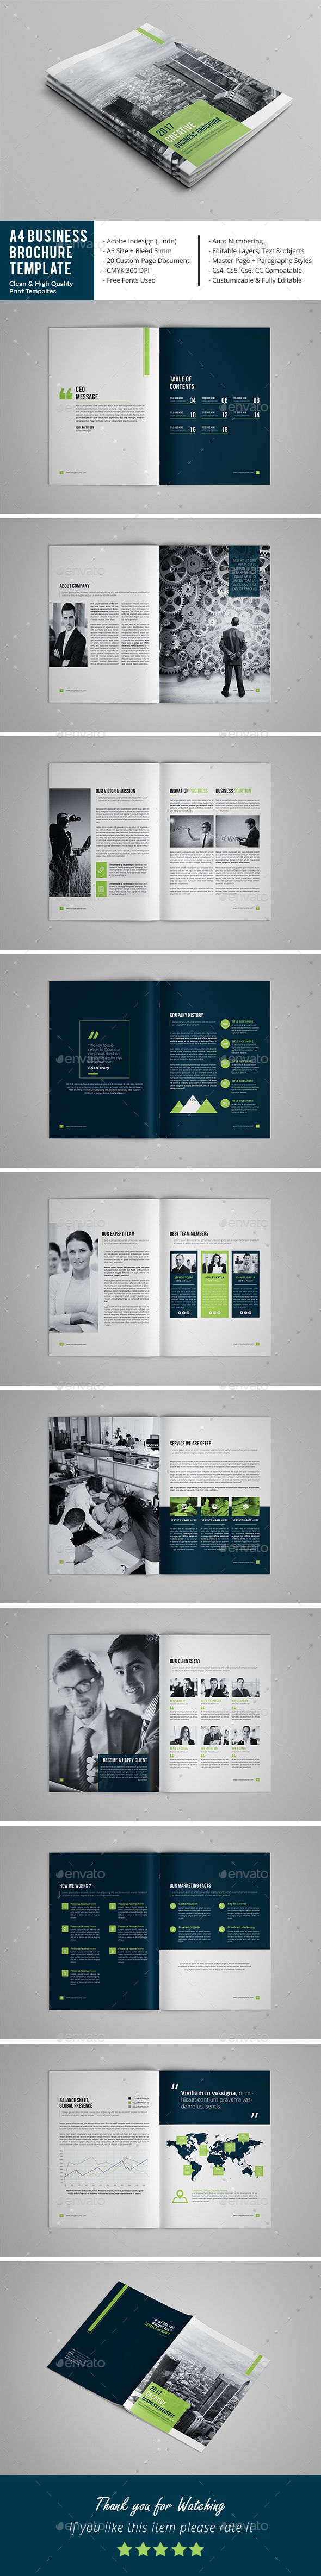 A4 Business Brochure Template | Diseño editorial, Editorial y Diseño ...